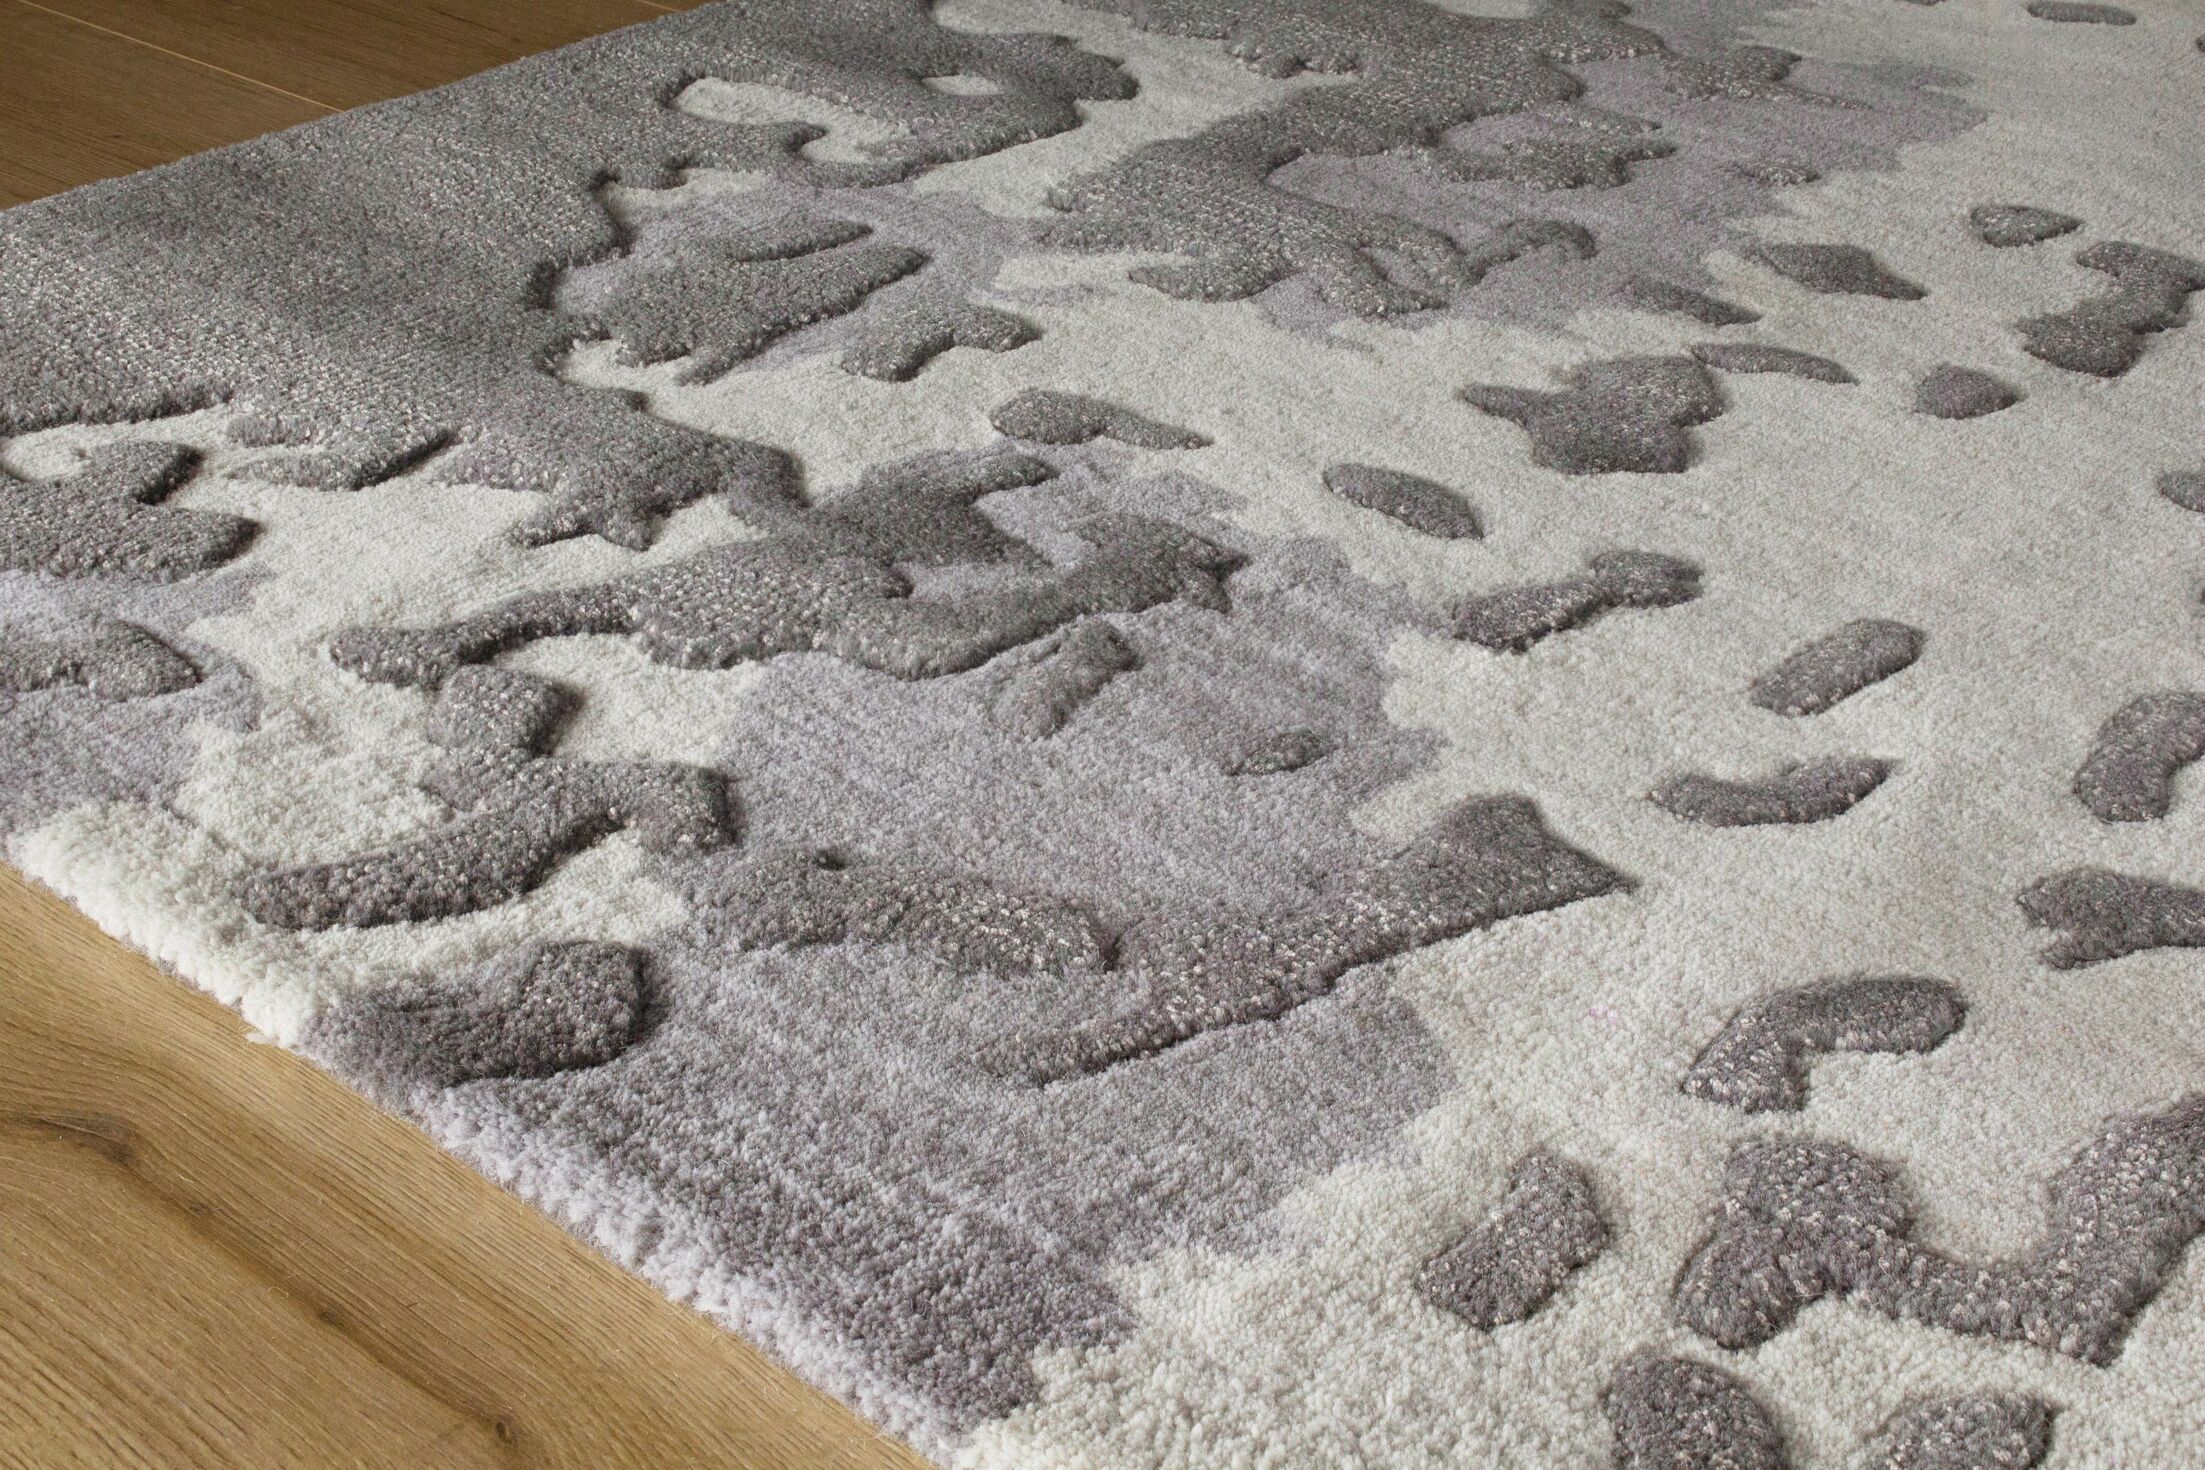 Melina Shattered Glass Gray/Cream Area Rug Rug Size: 5'3